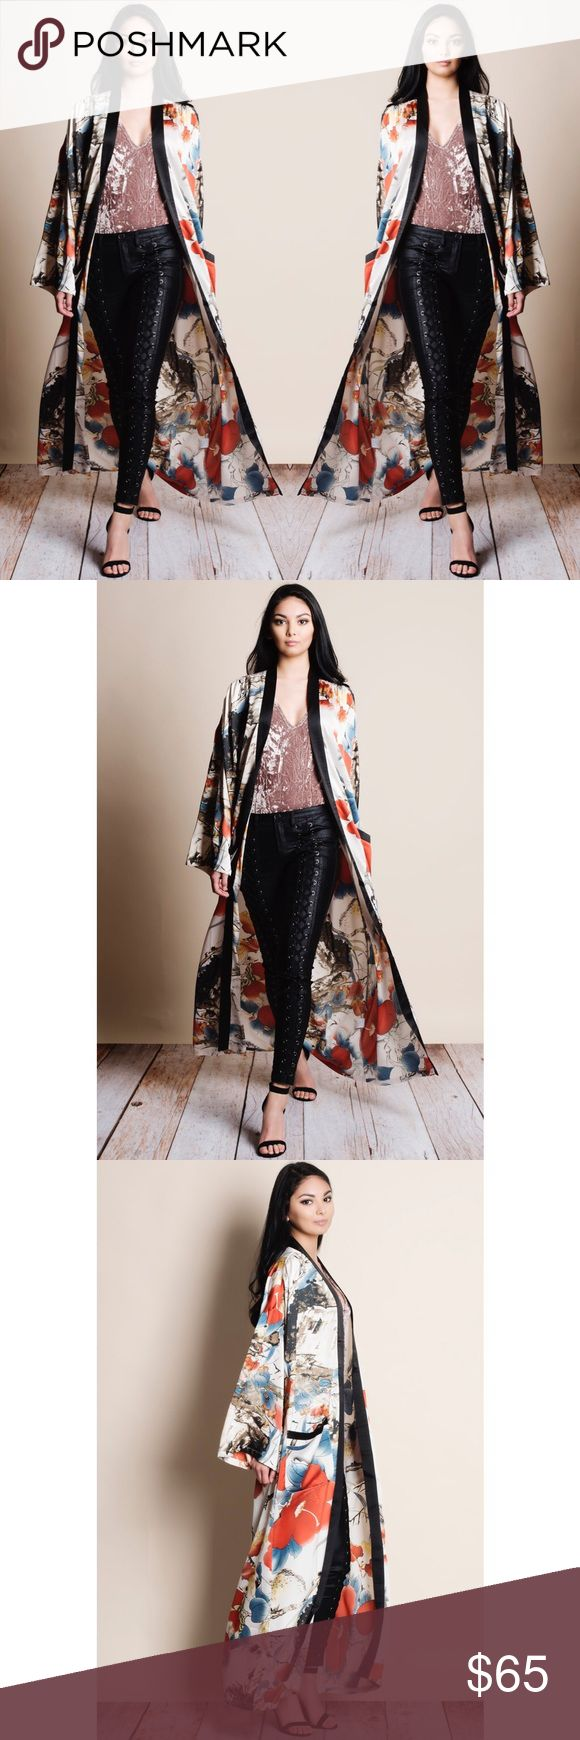 "Oriental Print Maxi Kimono Duster Oriental print Kimono Duster. Runs true to size. This is an ACTUAL PIC of the item - all photography done personally by me. Model is 5'9"", 33""-25""-36.5"" wearing the size small. NO TRADES DO NOT BOTHER ASKING. Bare Anthology Sweaters Cardigans"